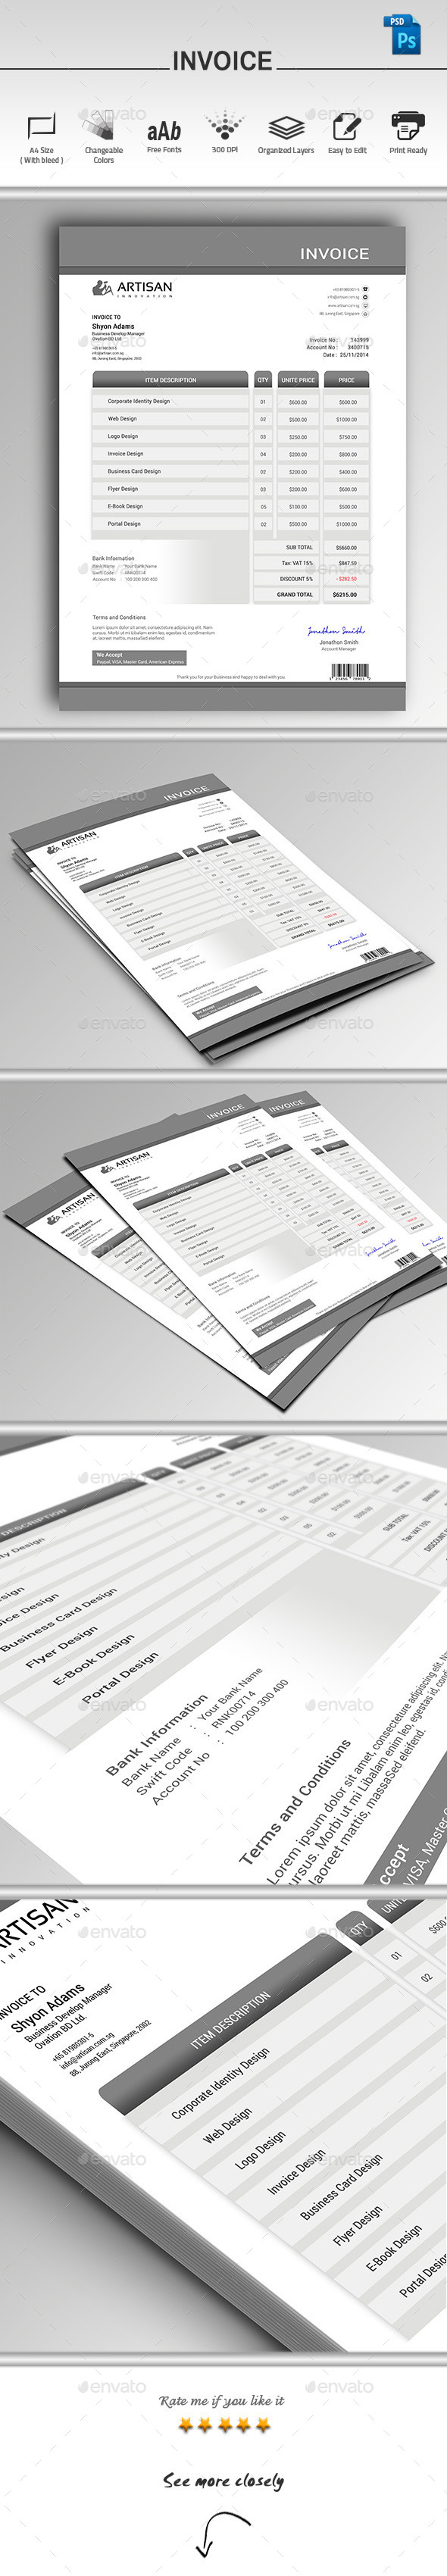 GraphicRiver Invoice 9663707